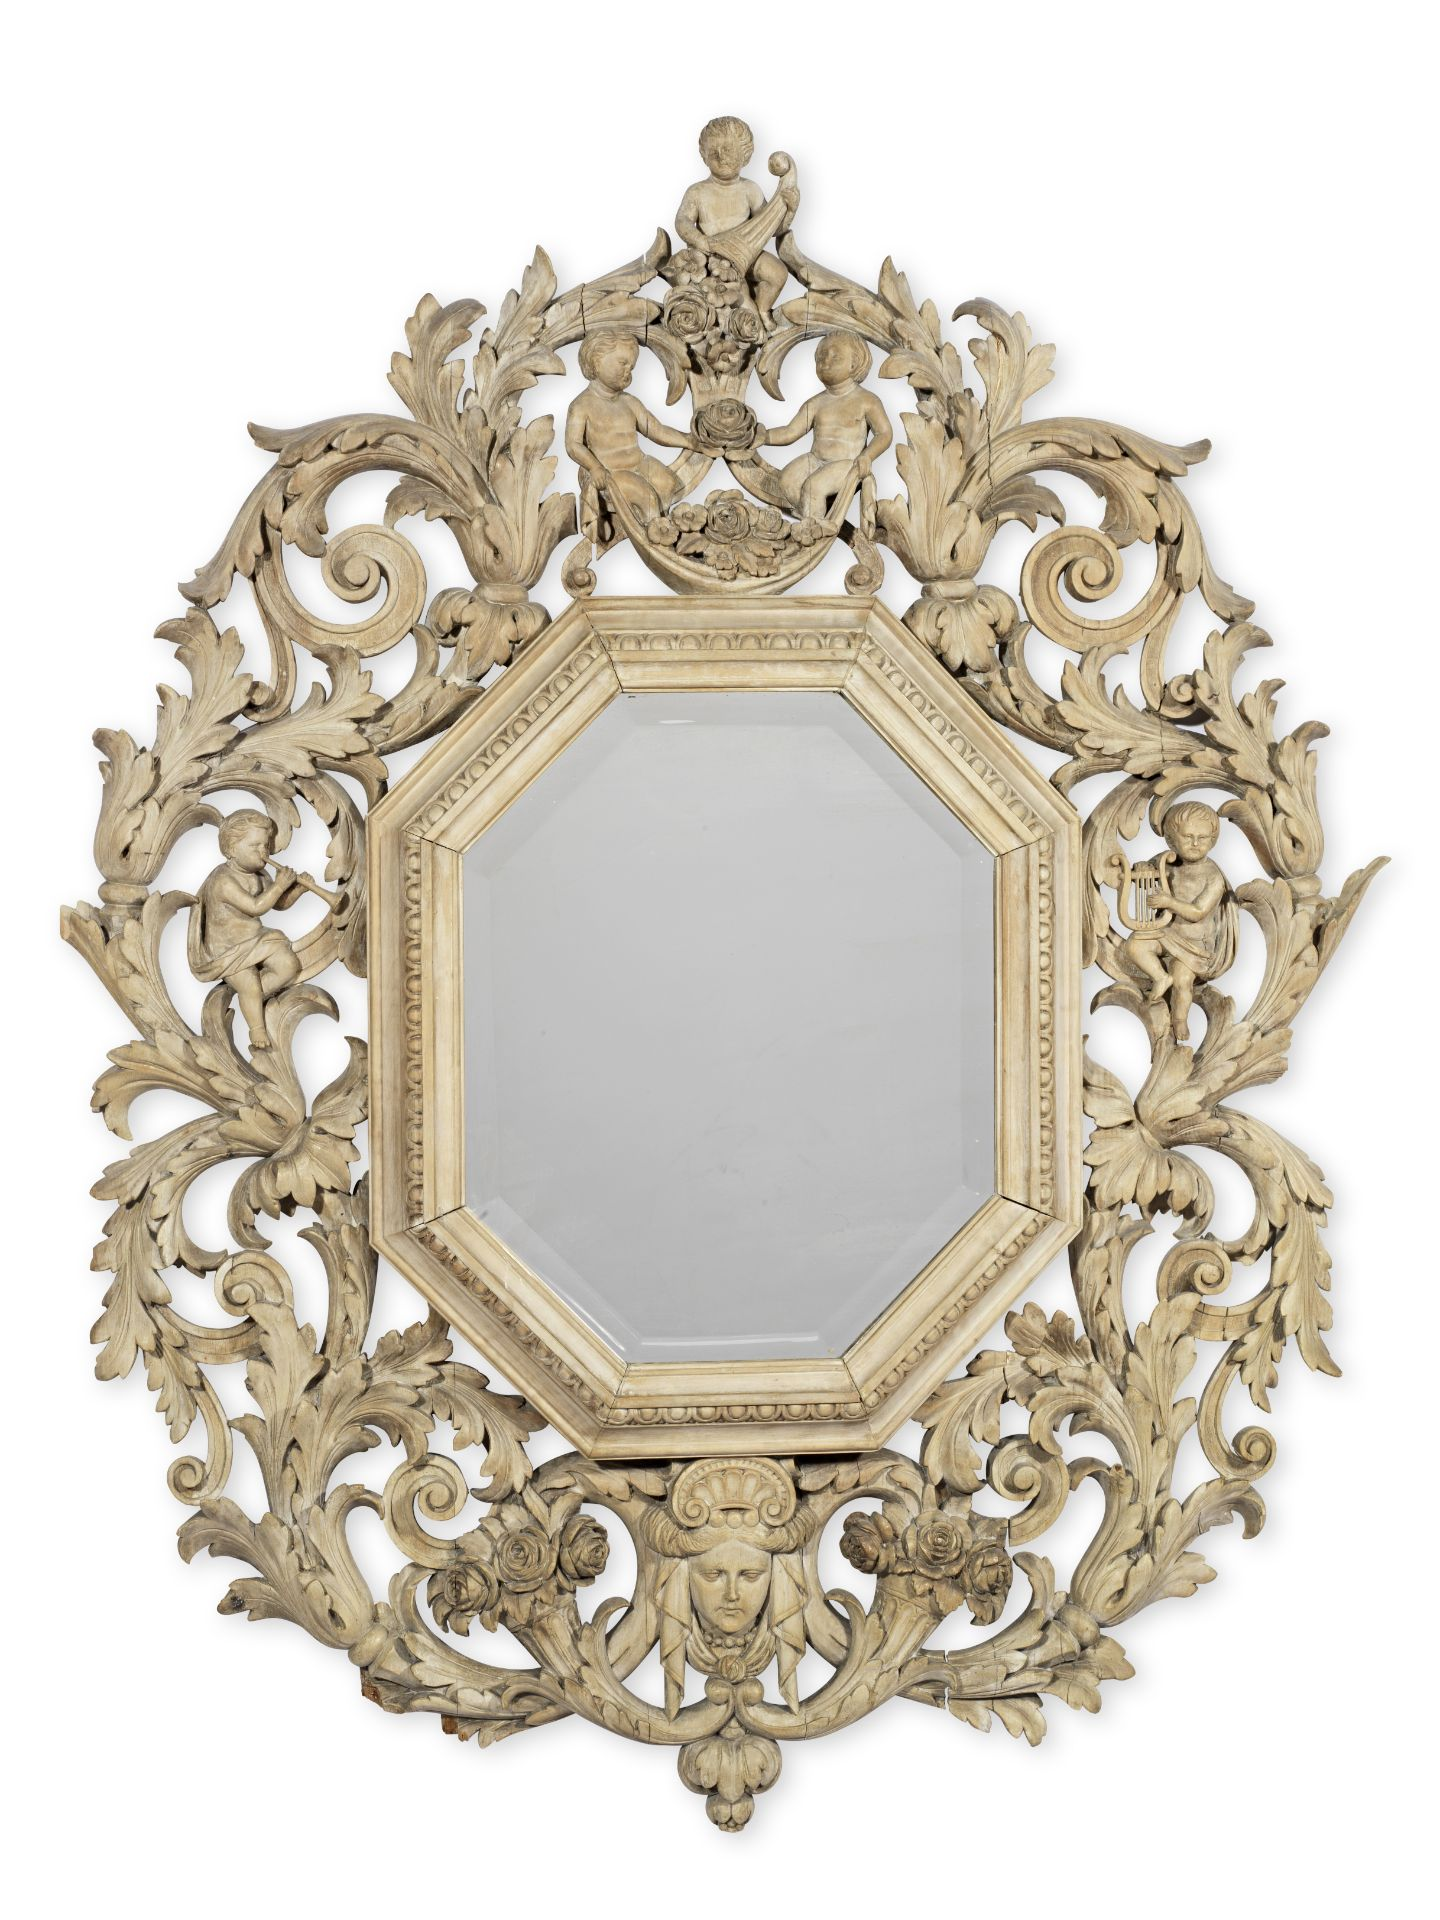 Los 115 - An Anglo-Dutch painted mirror or picture frame probably late 17th century but later stripped and ...